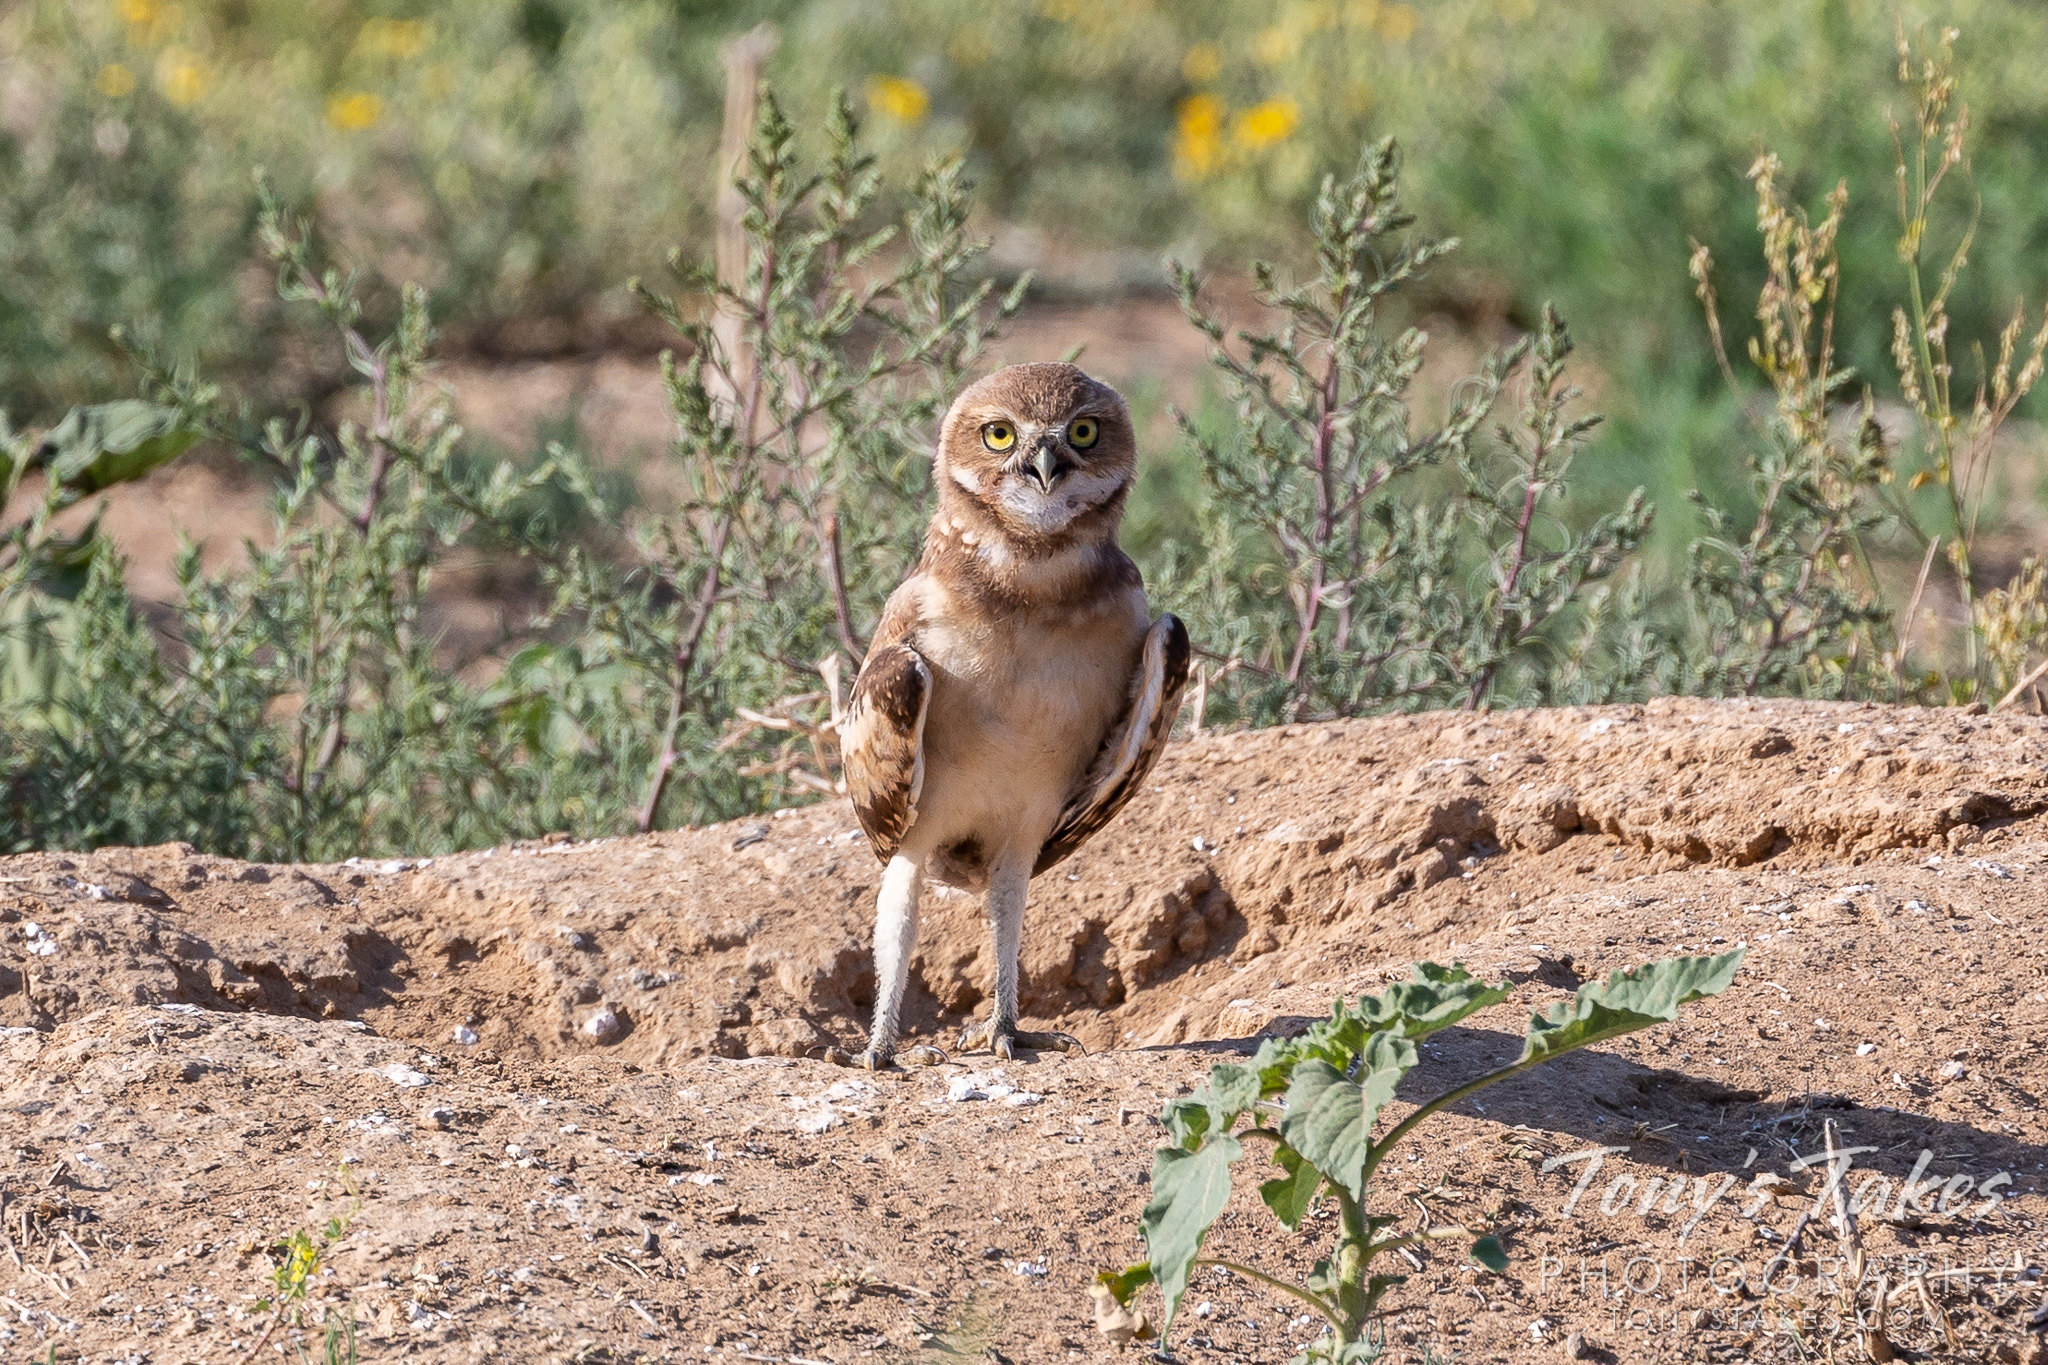 Burrowing owl owlet stands tall and says hello